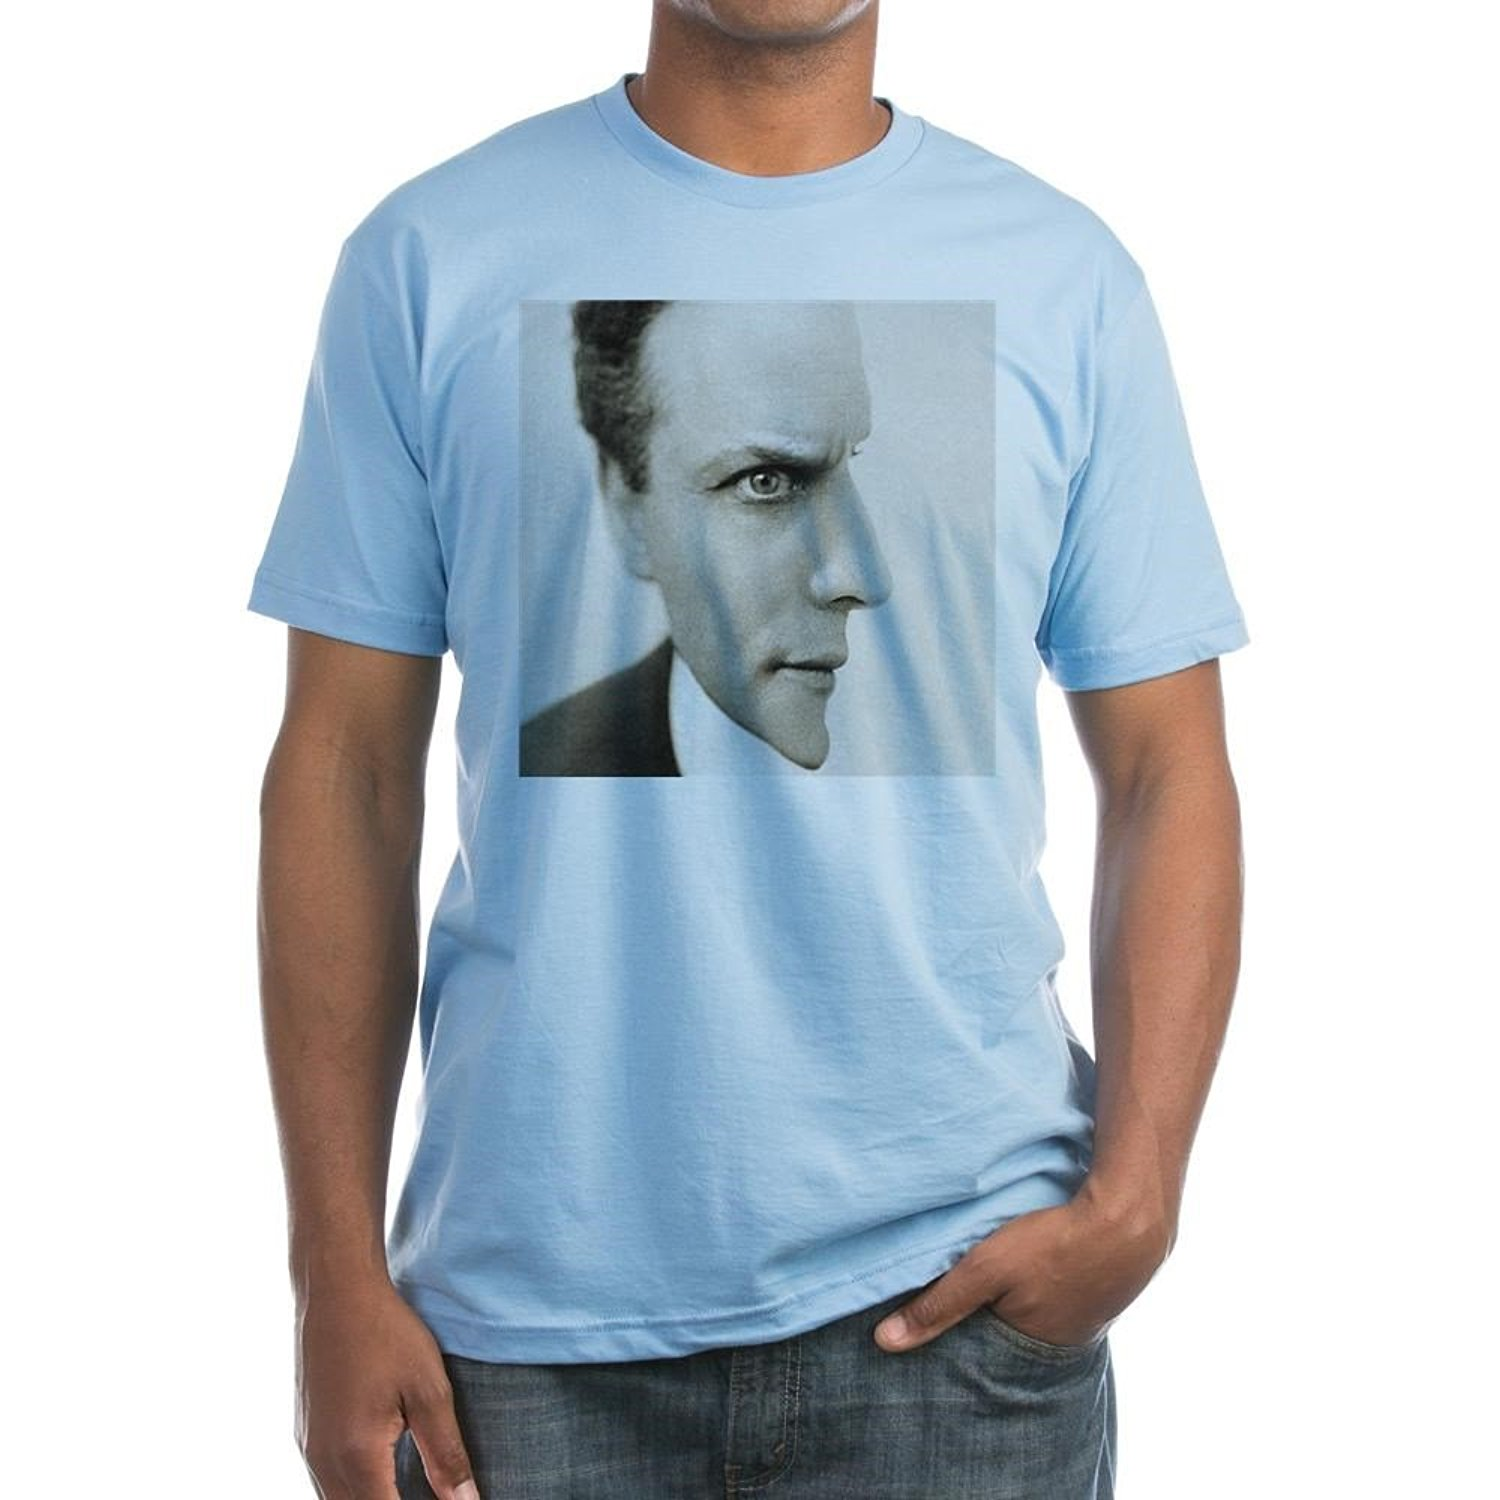 Gildan CafePress-Houdini Optical Illusion Fitted T-Shirt-Fitted T-Shirt, Vintage Fit Soft Cotton Tee